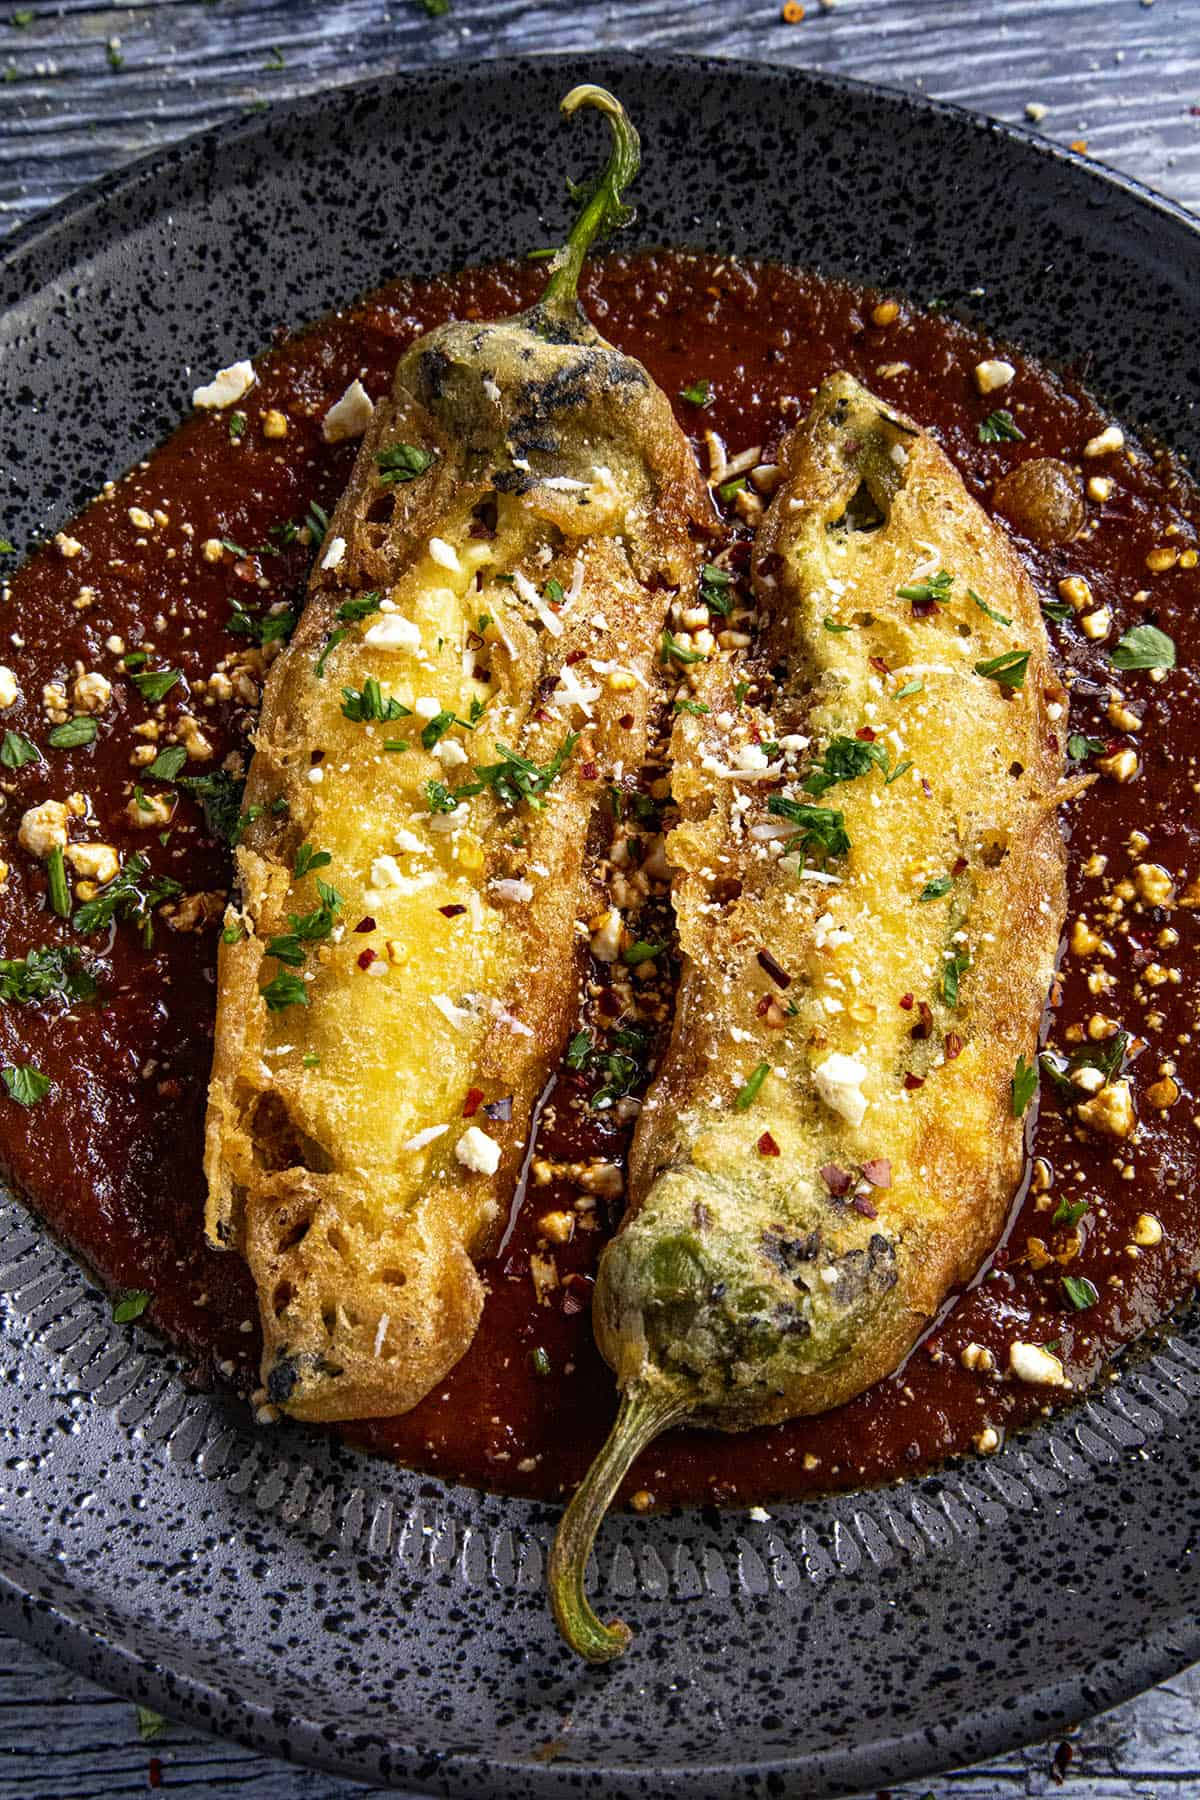 Chile Relleno recipe